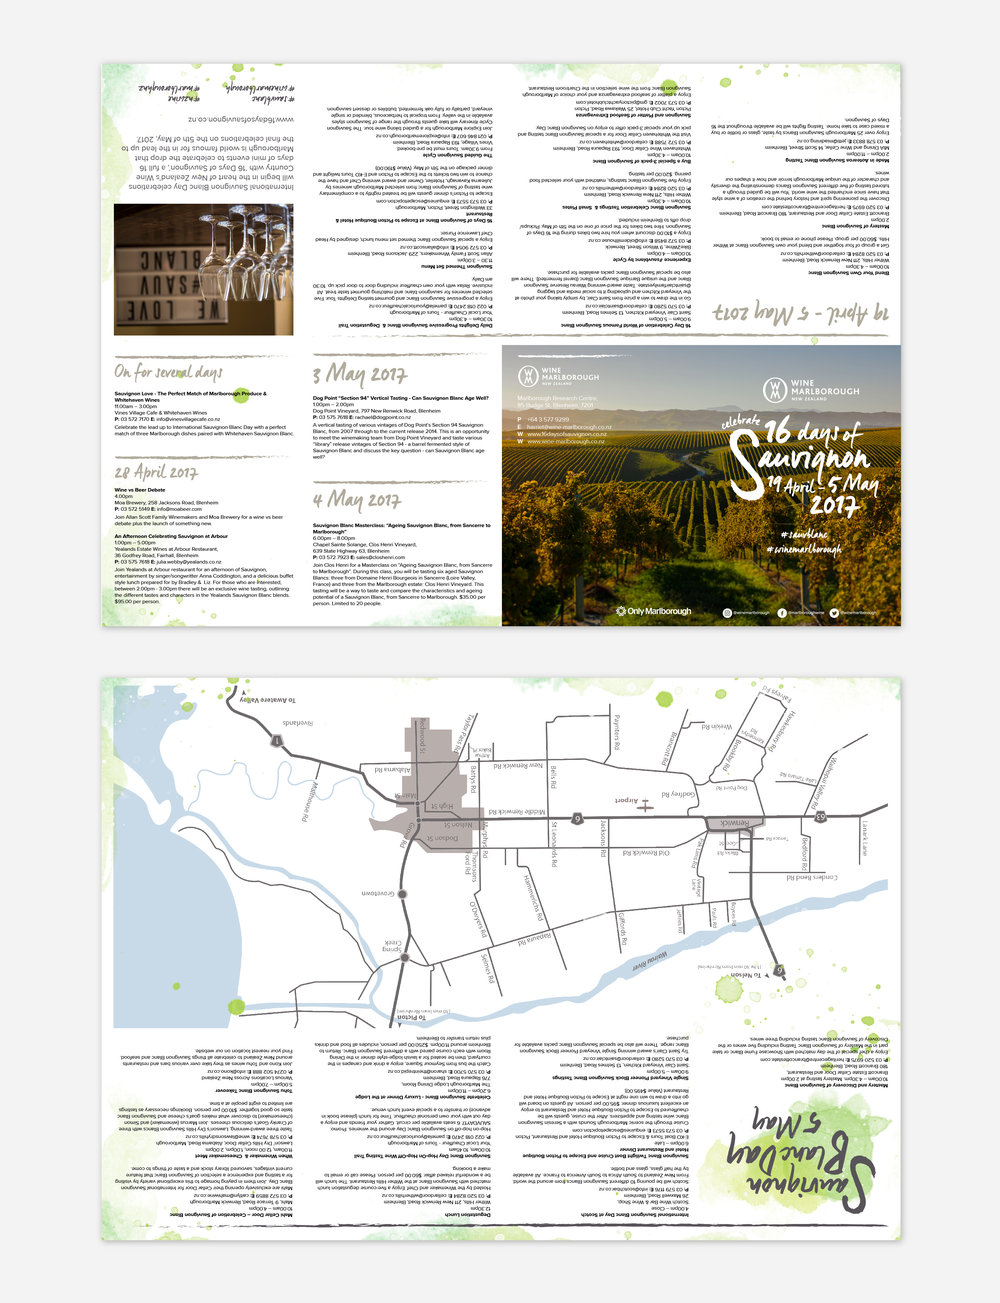 16 Days of Sauvignon fold out events guide + map.